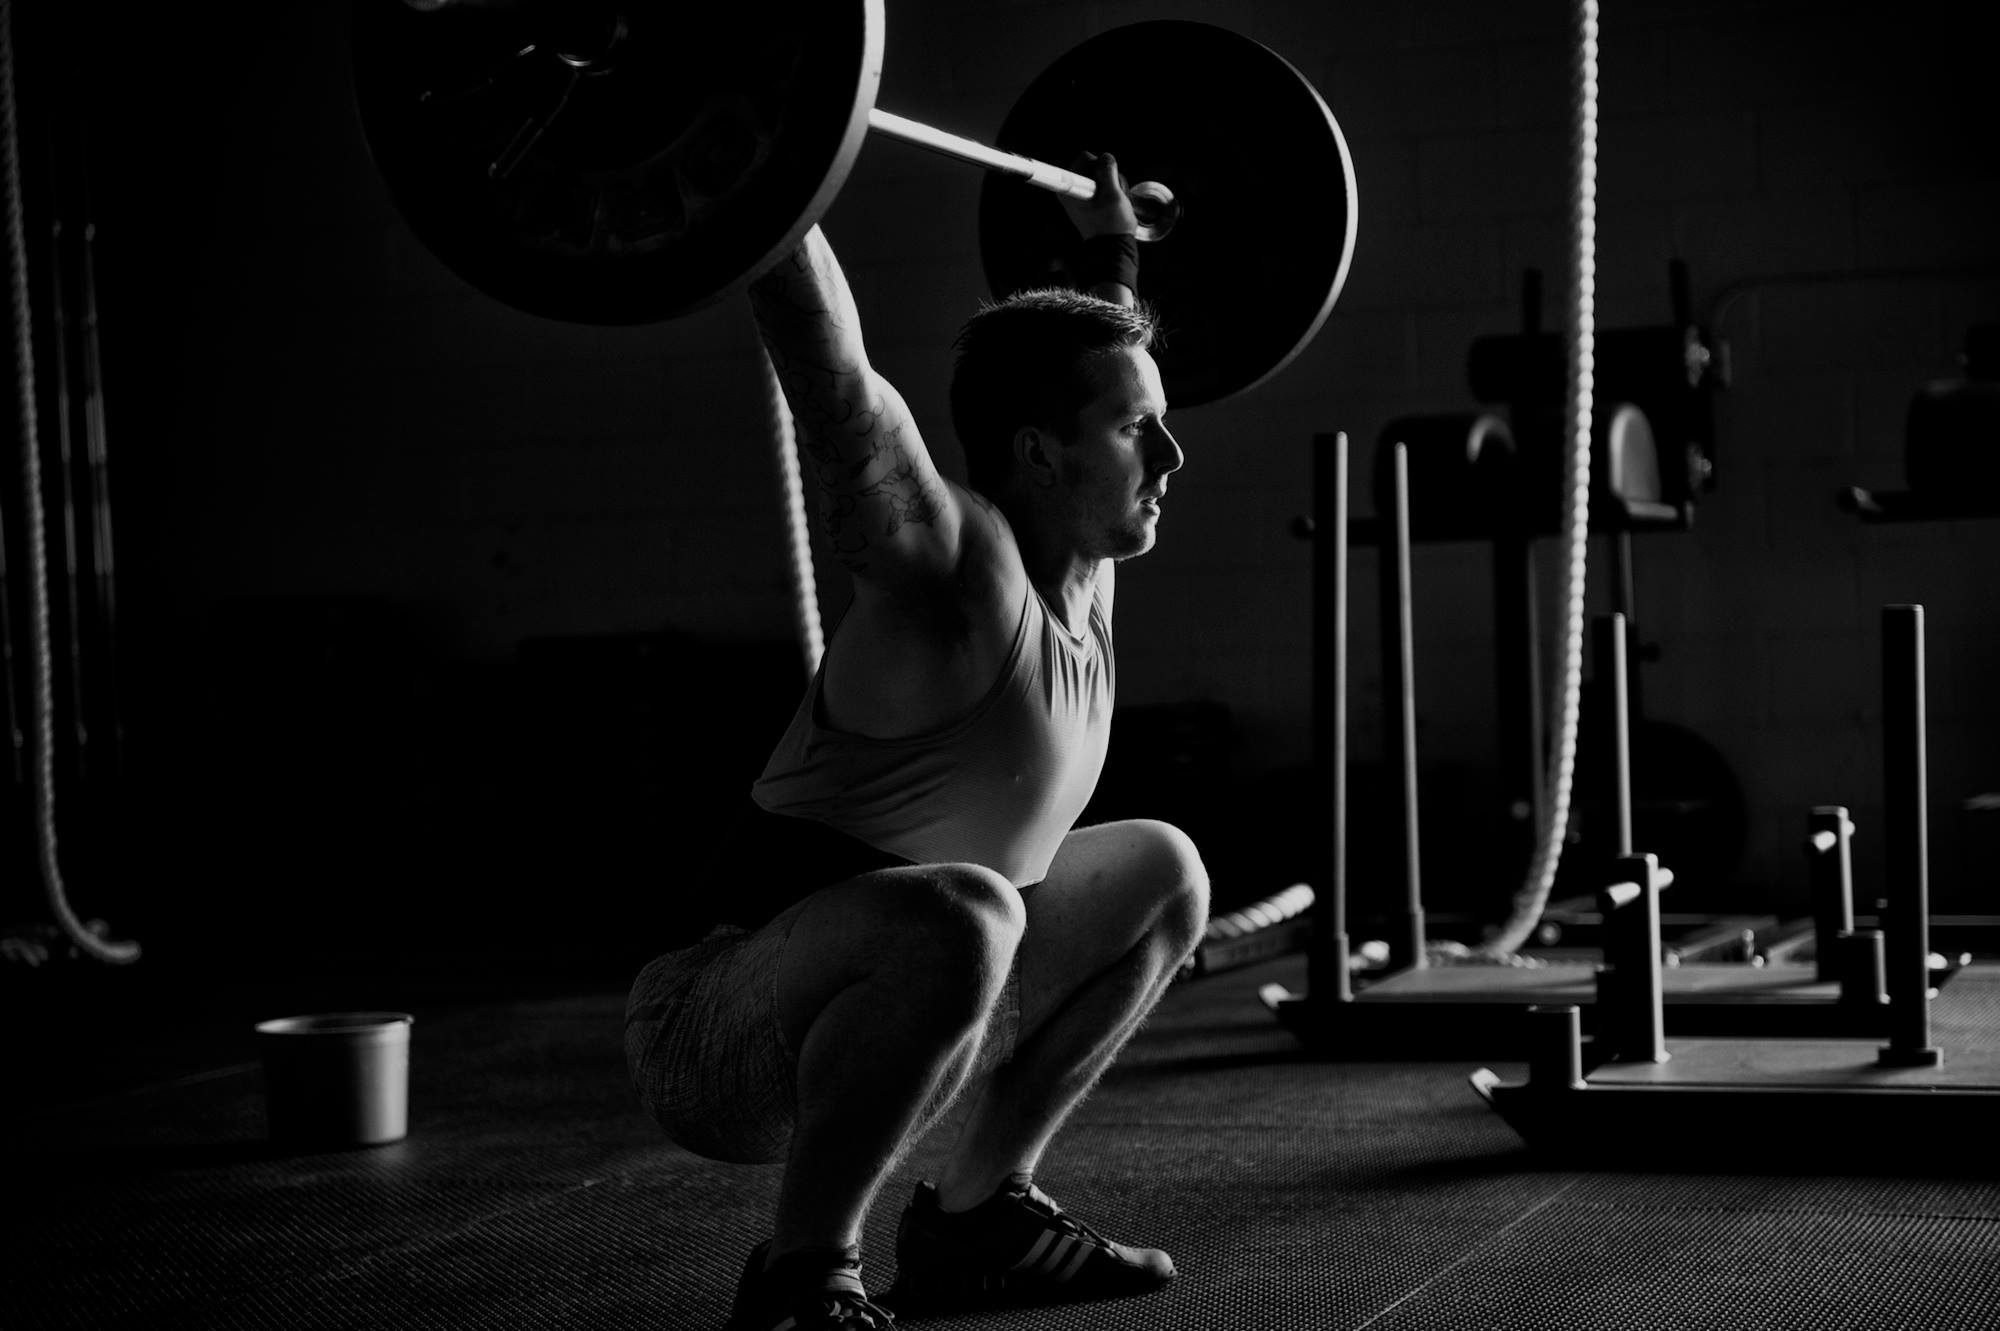 Crossfit Wallpapers 67 images 2000x1331